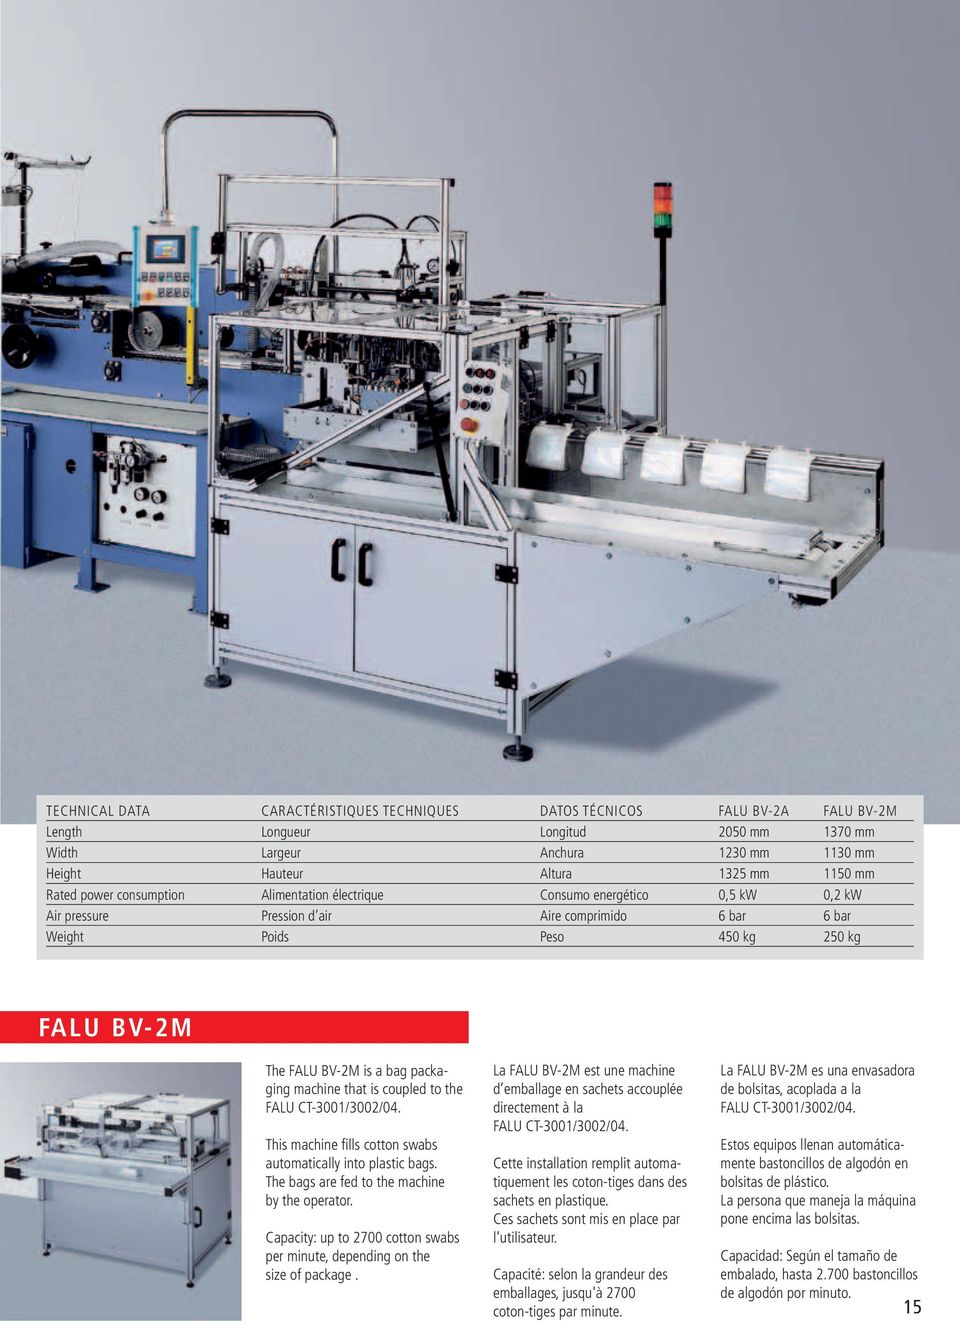 bag packaging machine that is coupled to the FALU CT-3001/3002/04. This machine fills cotton swabs automatically into plastic bags. The bags are fed to the machine by the operator.